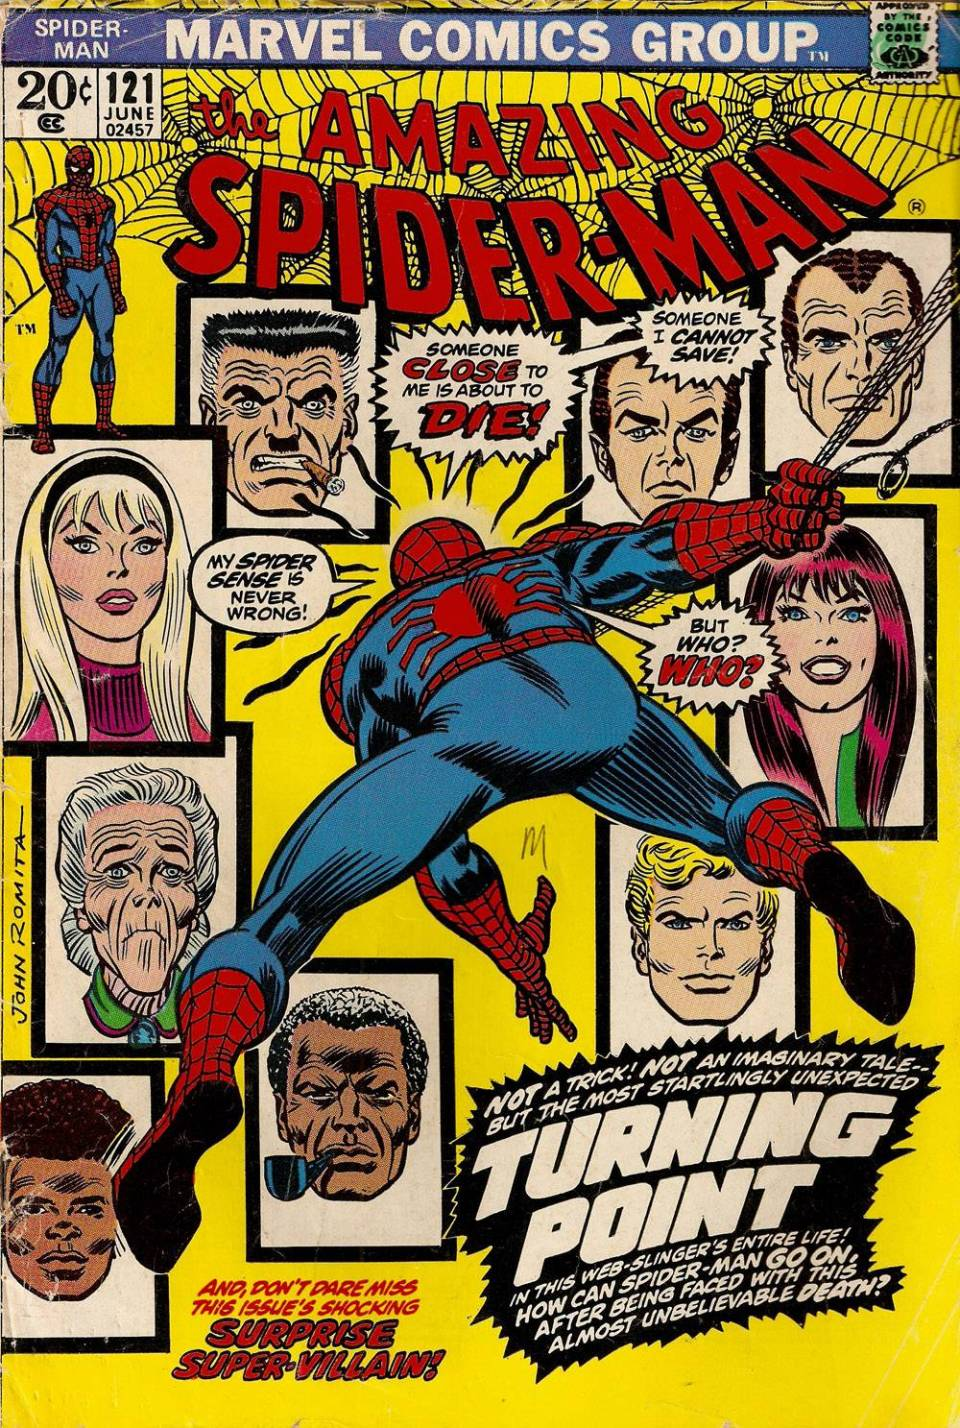 The Night That Gwen Stacy Died